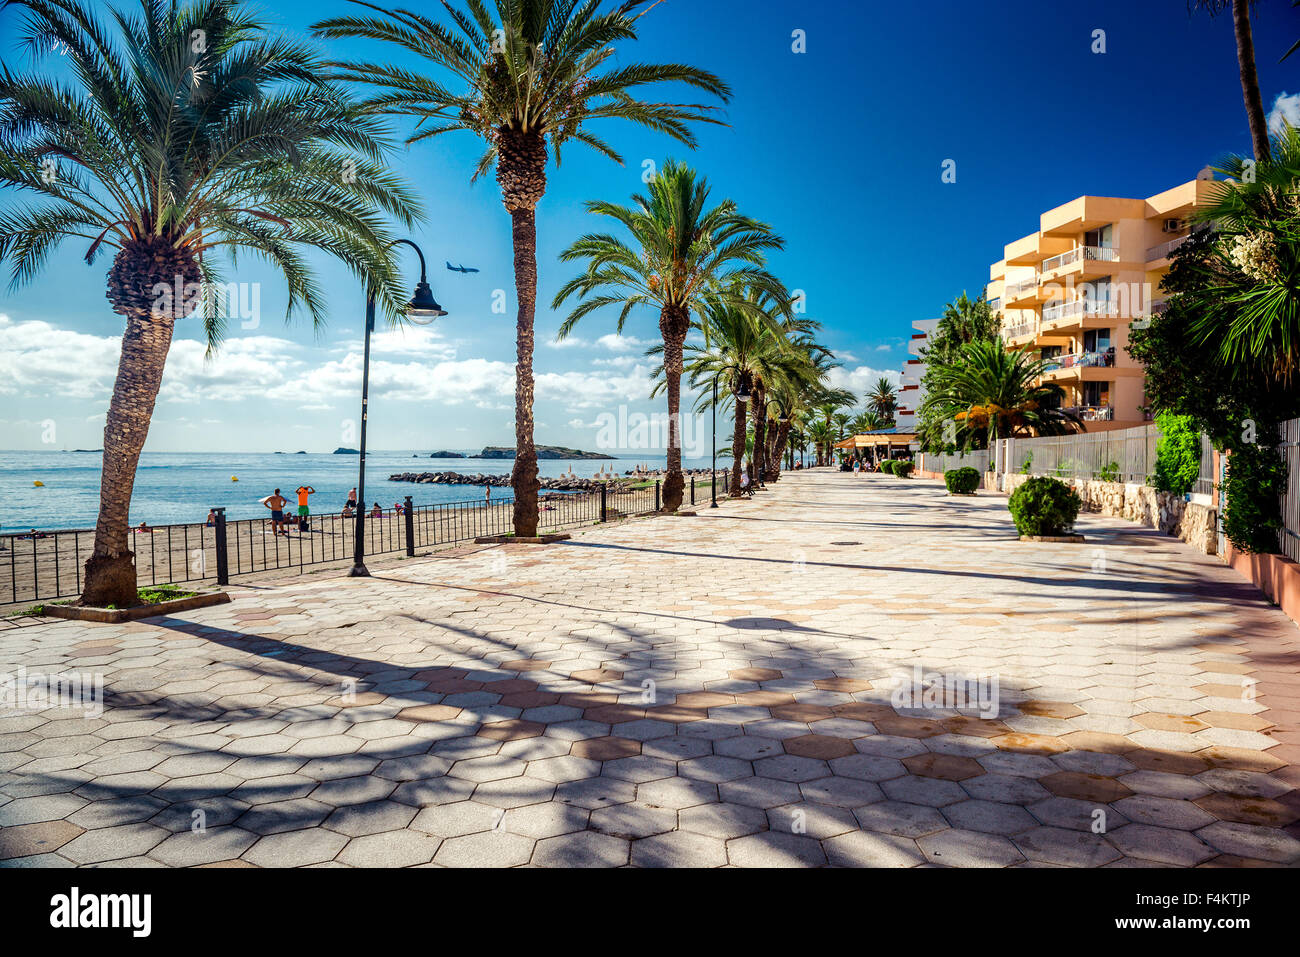 View of Ibiza seafront. Spain - Stock Image